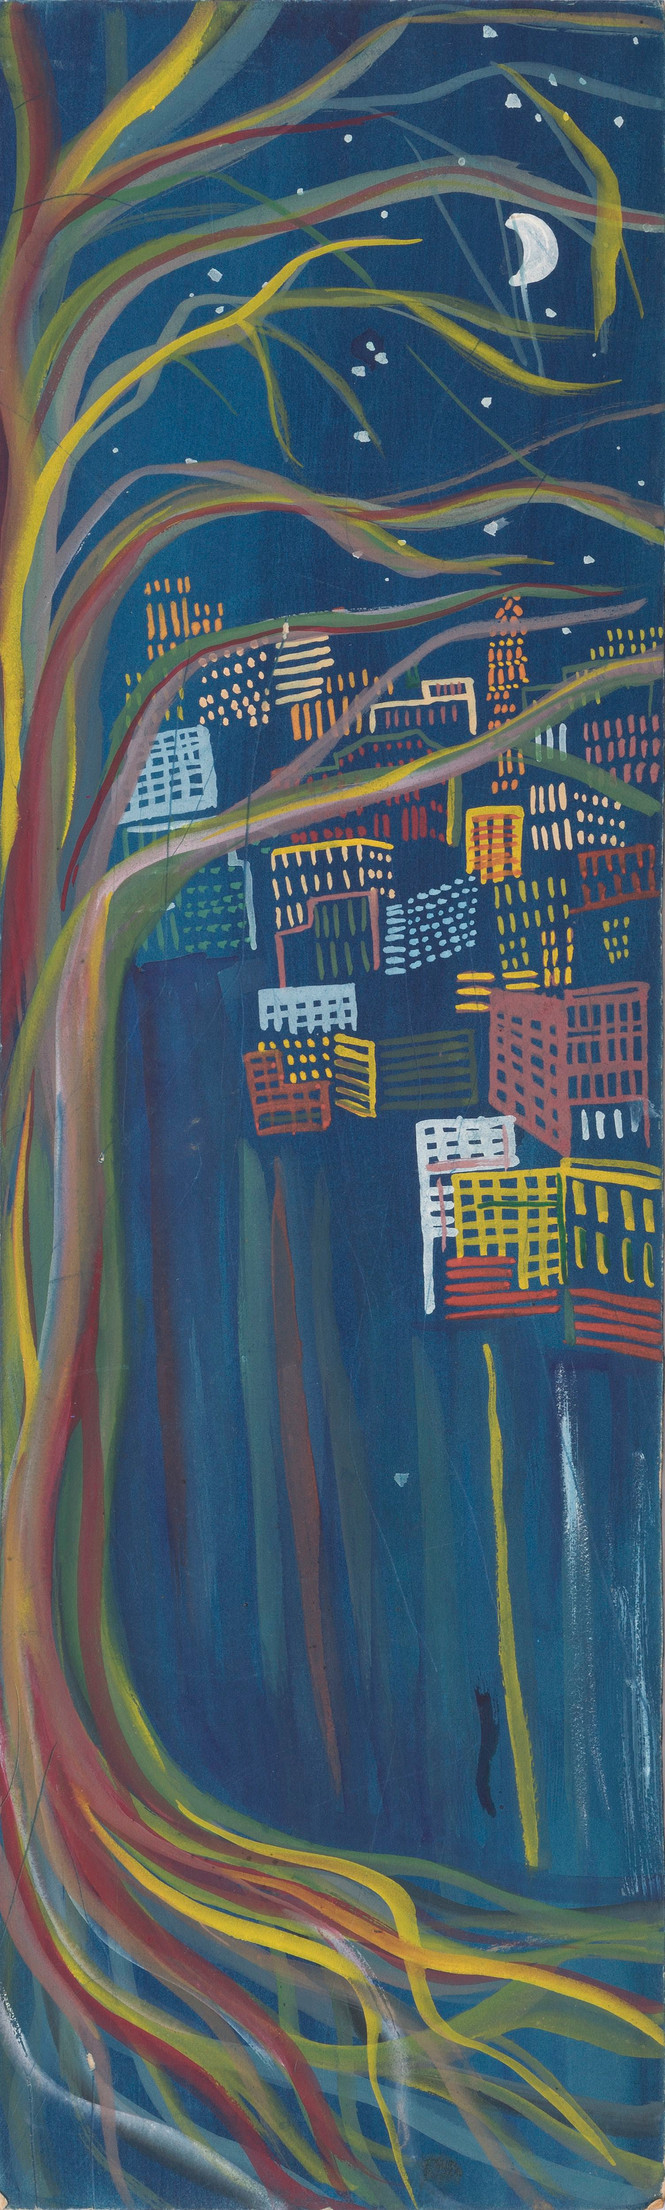 Untitled - cityscape with big tree at night